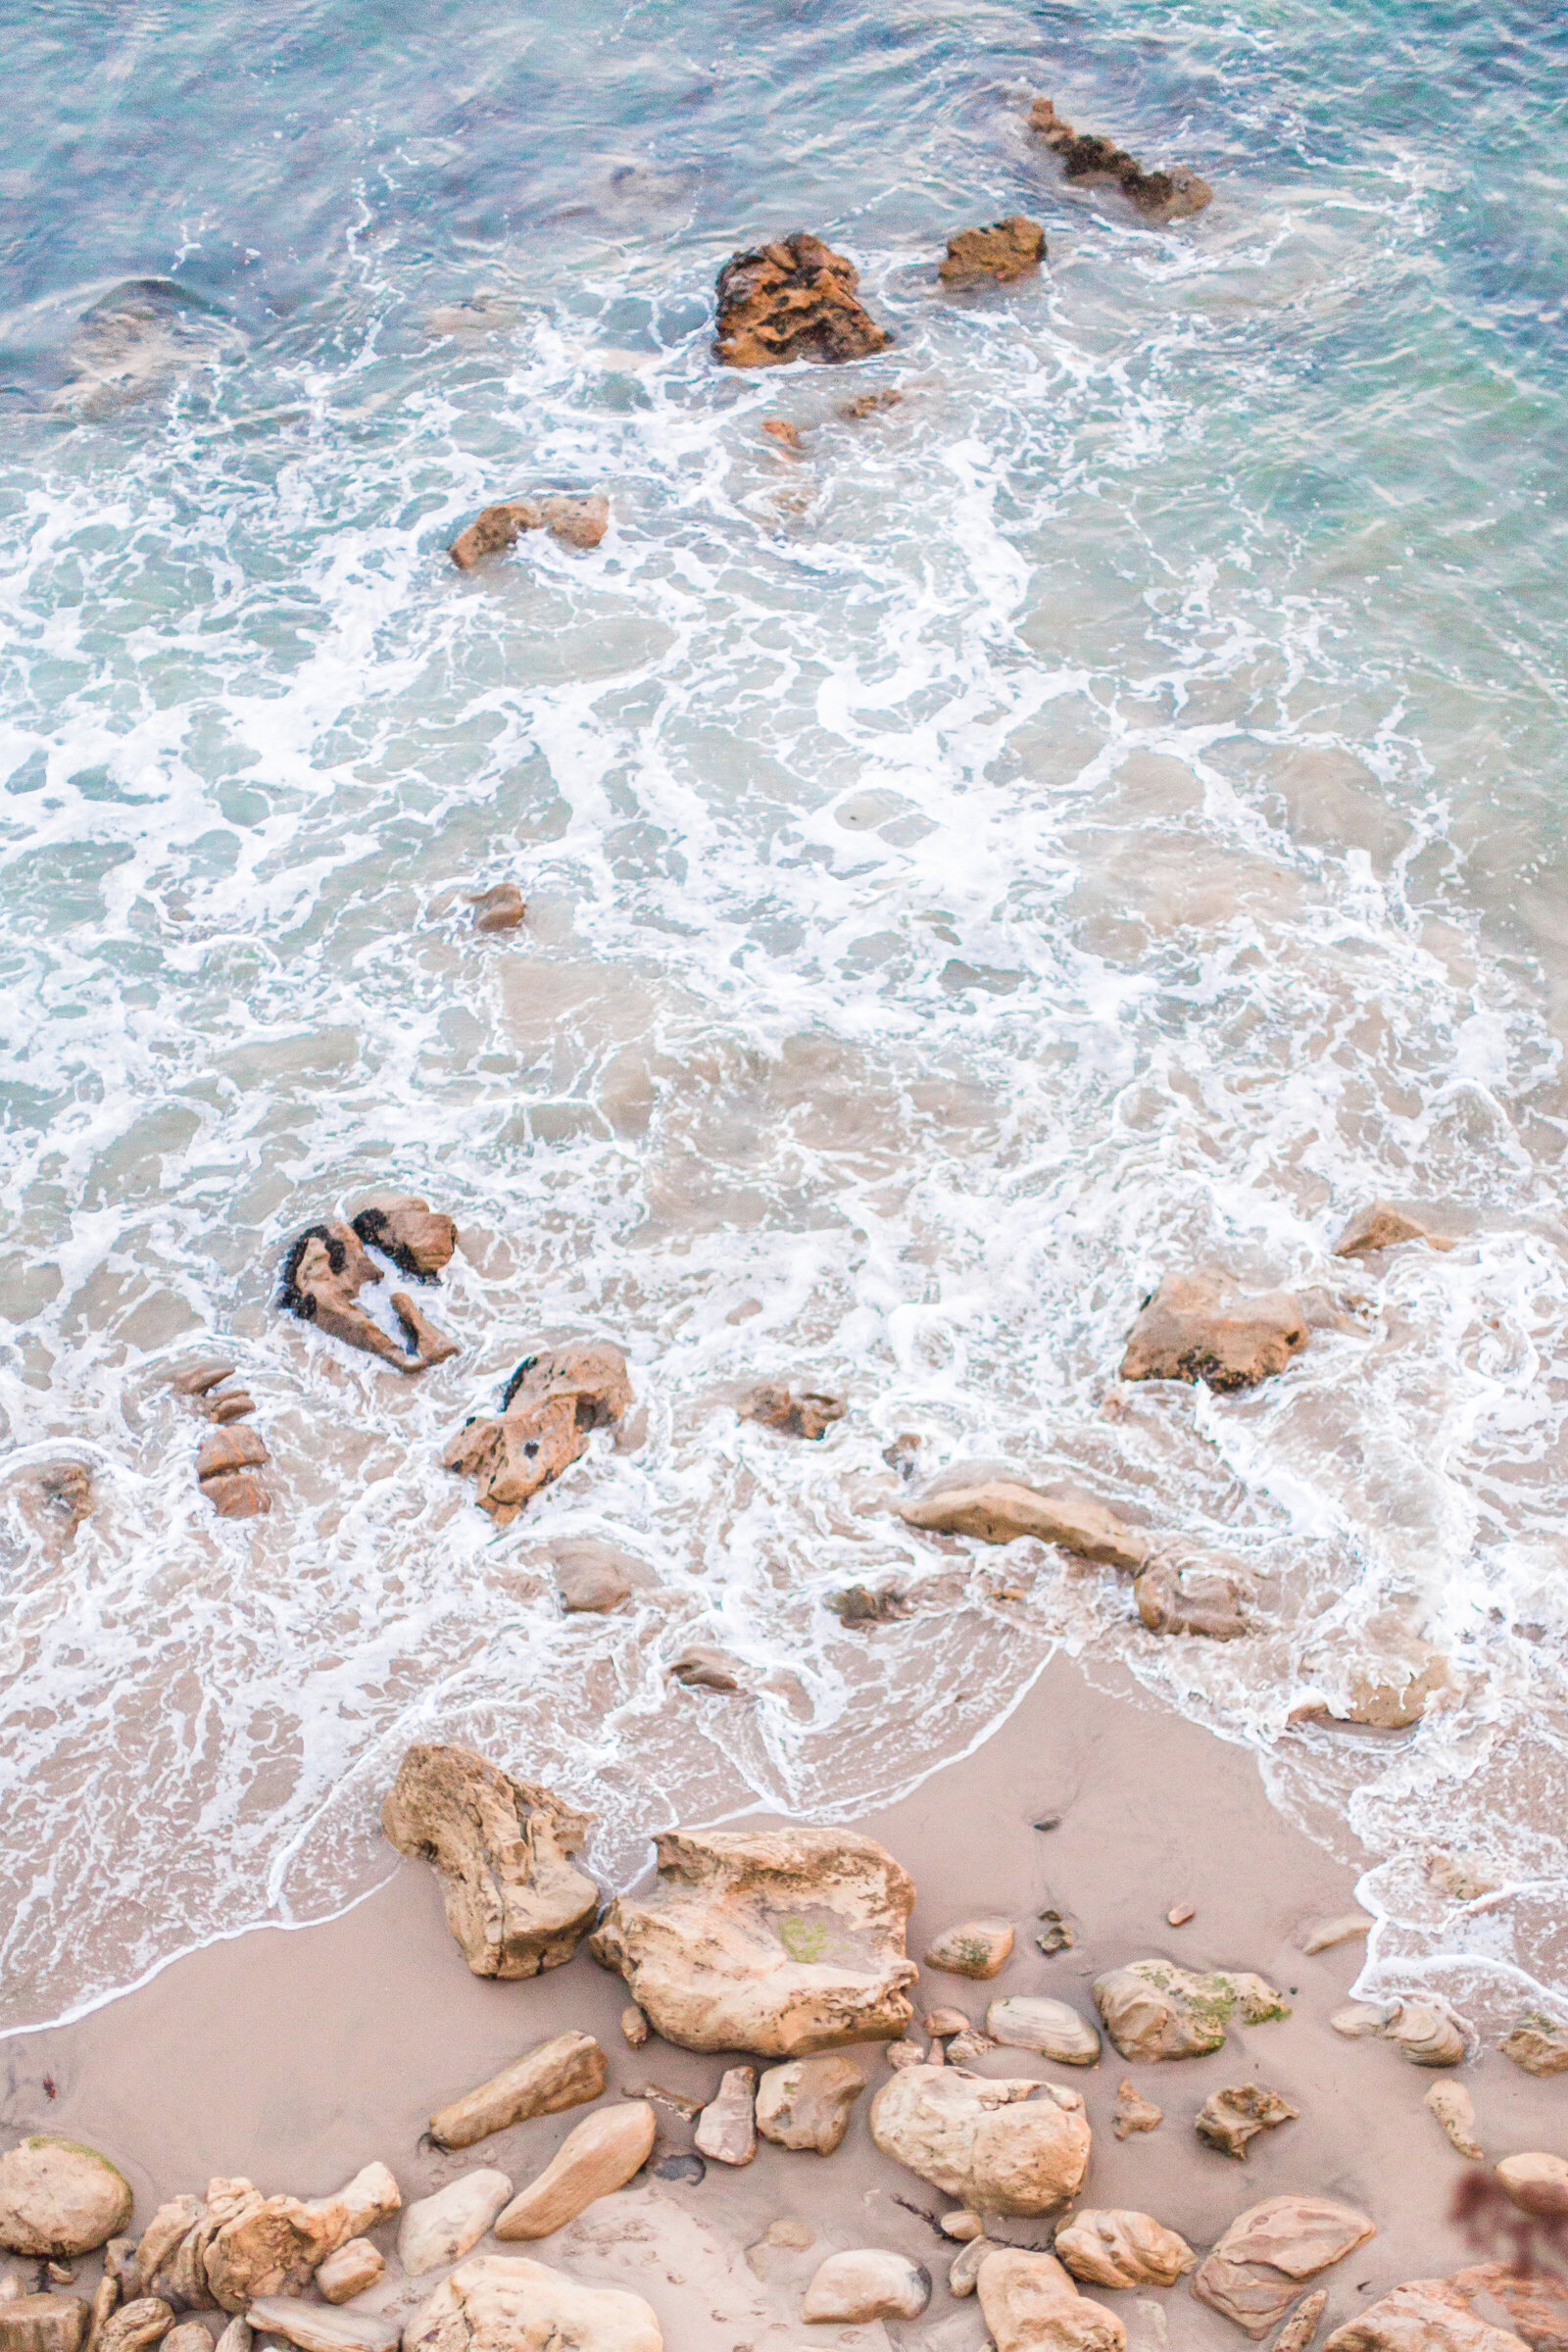 005-KBP-California-Beach-Ocean-Malibu-Waves